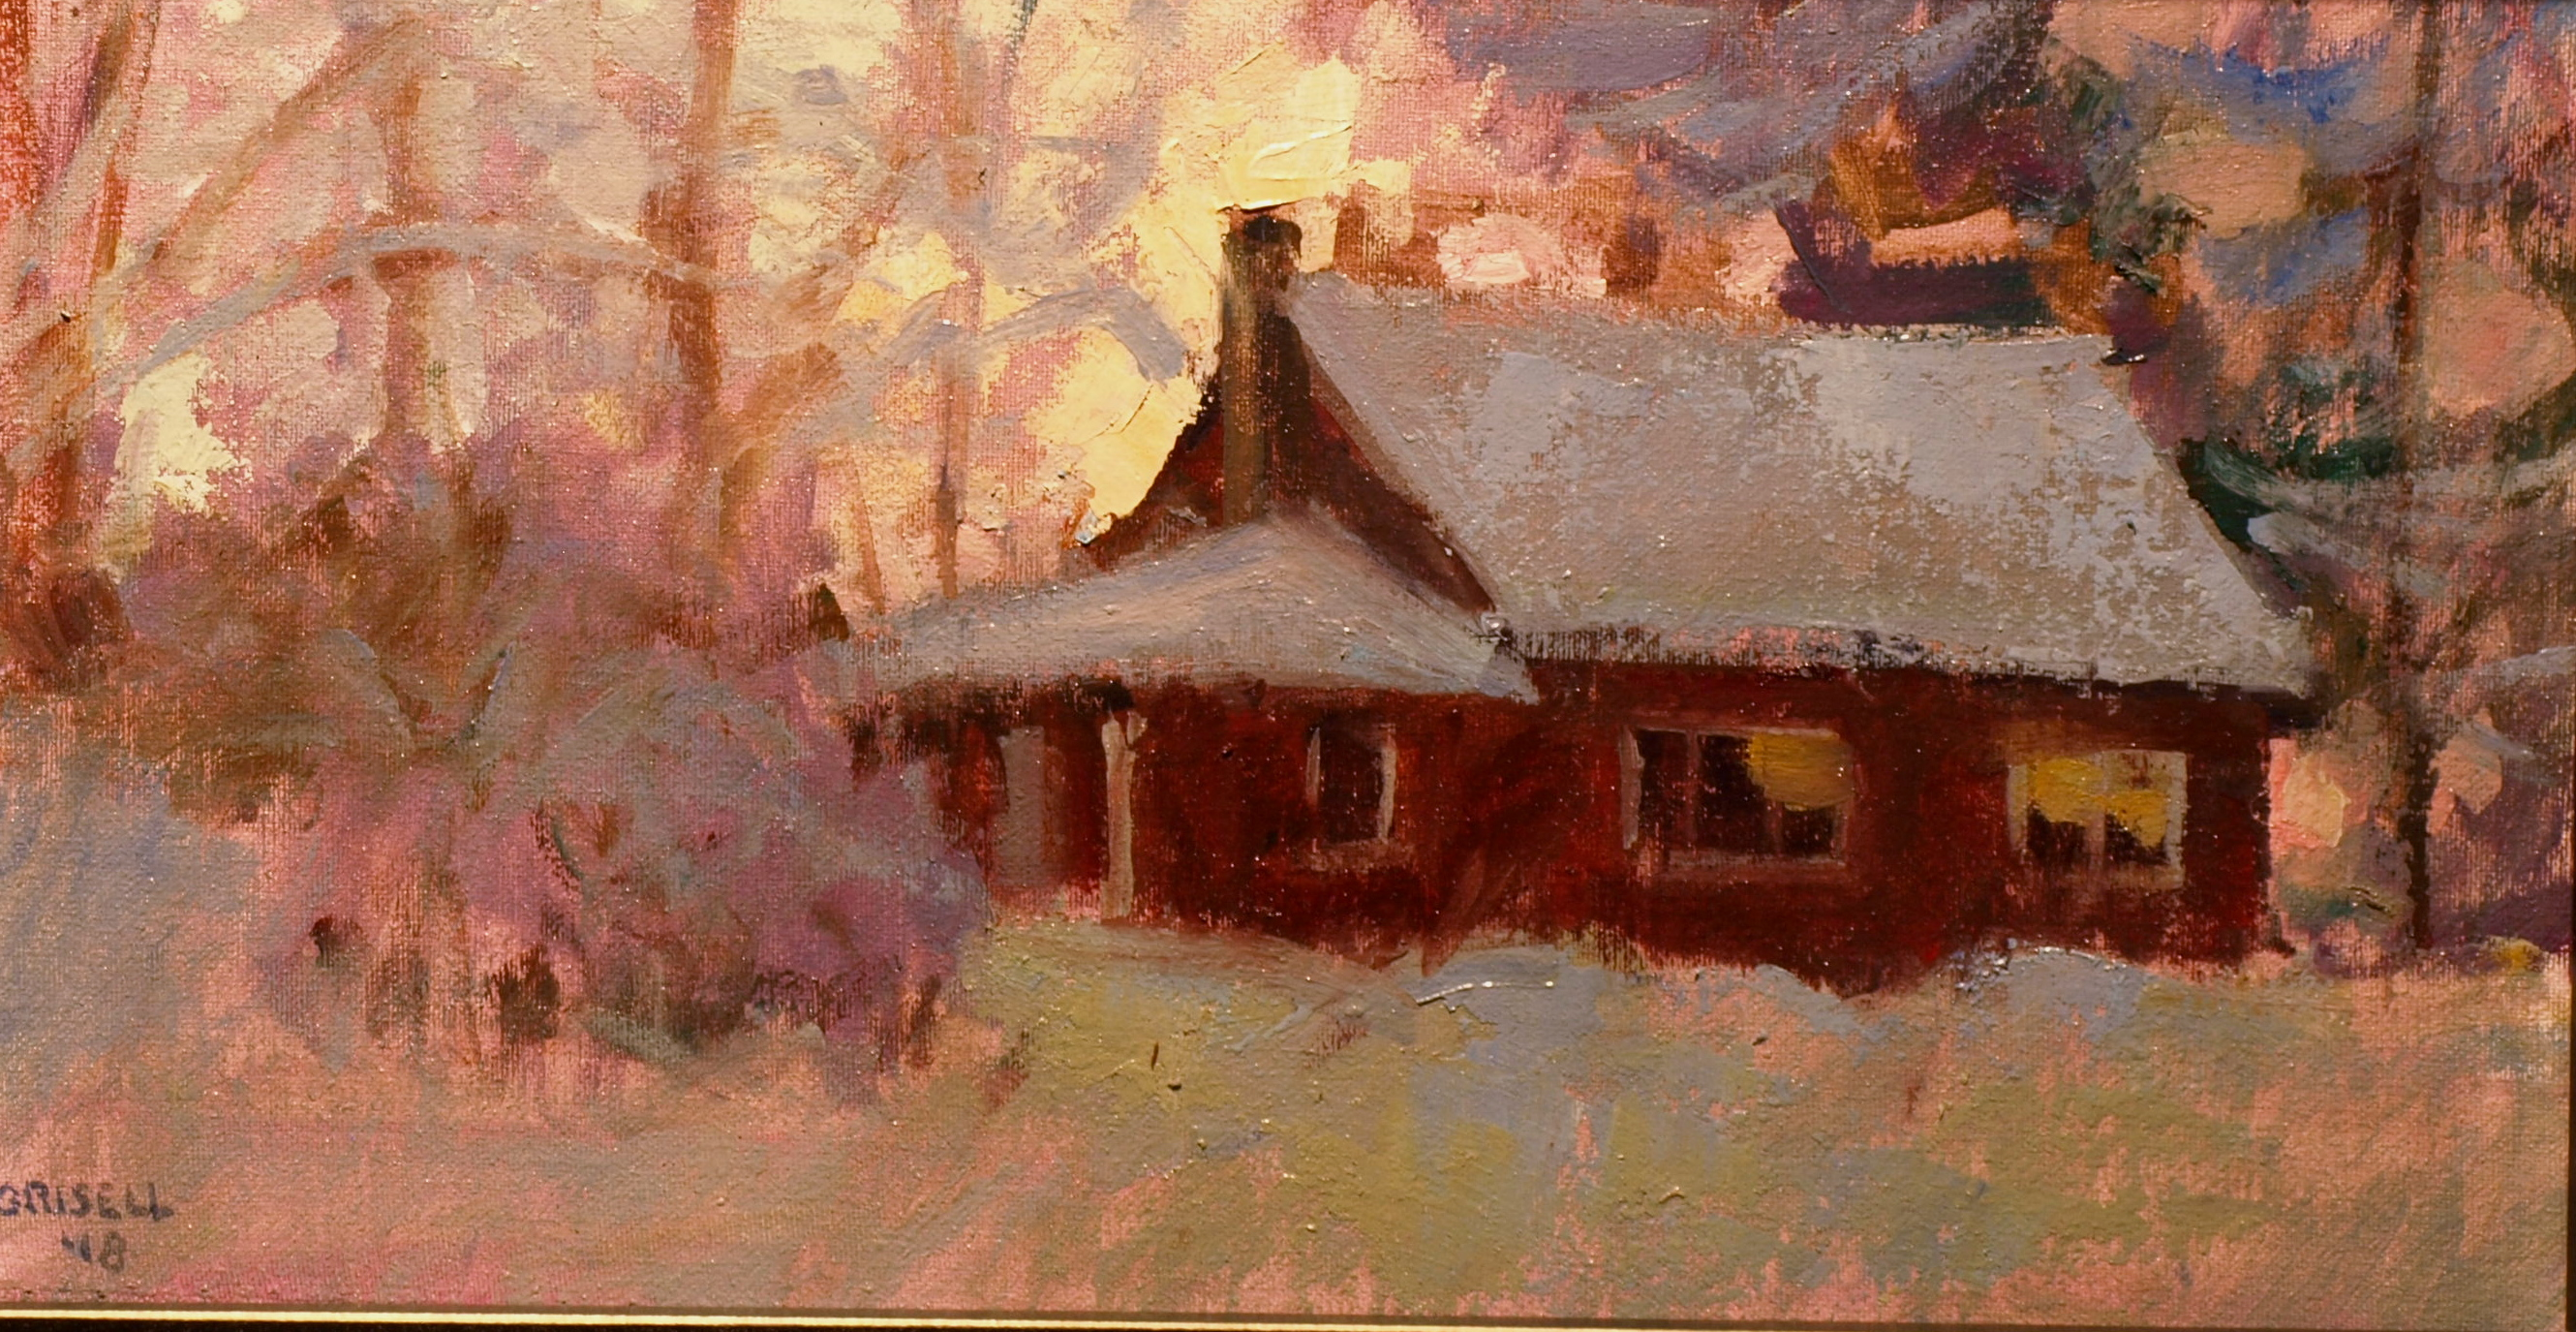 My House in Snow, Oil on Canvas on Panel, 9 x 16 Inches, by Susan Grisell, $275